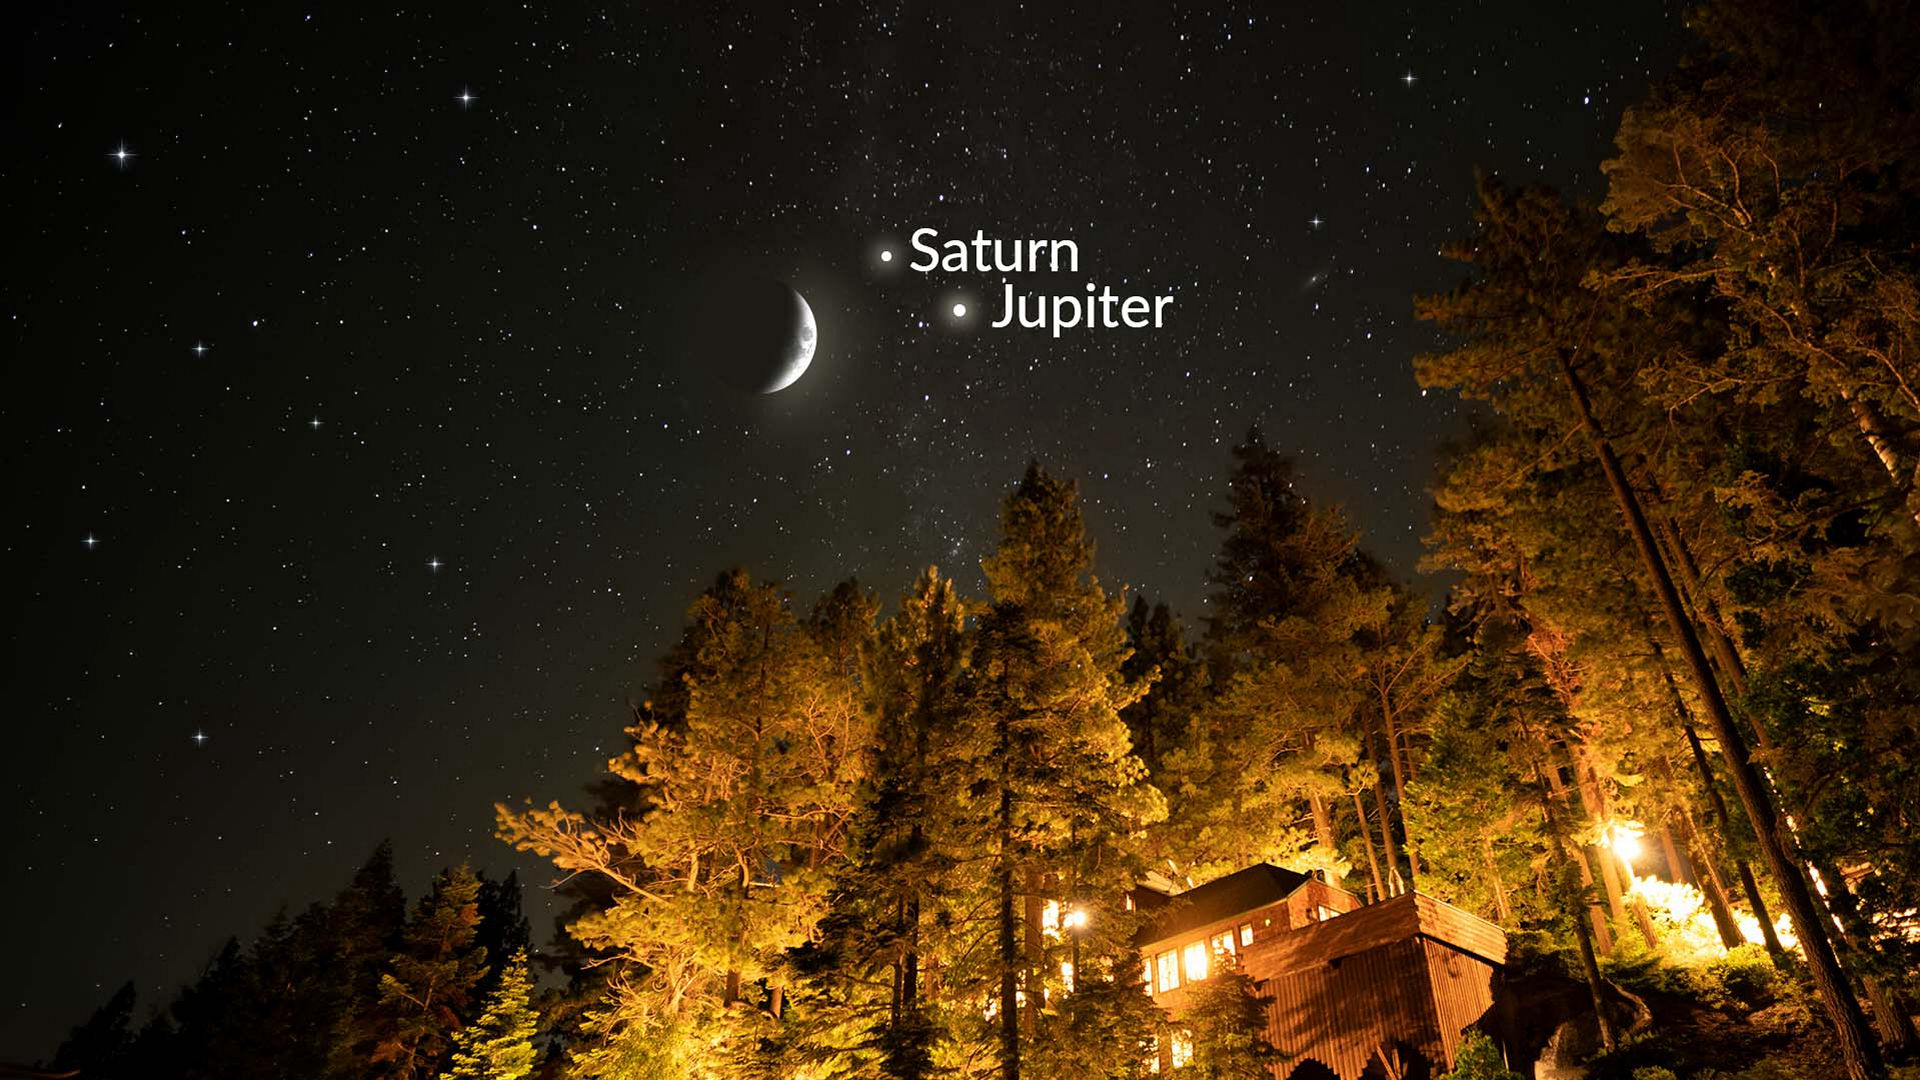 The Moon, Jupiter, and Saturn Shine Together